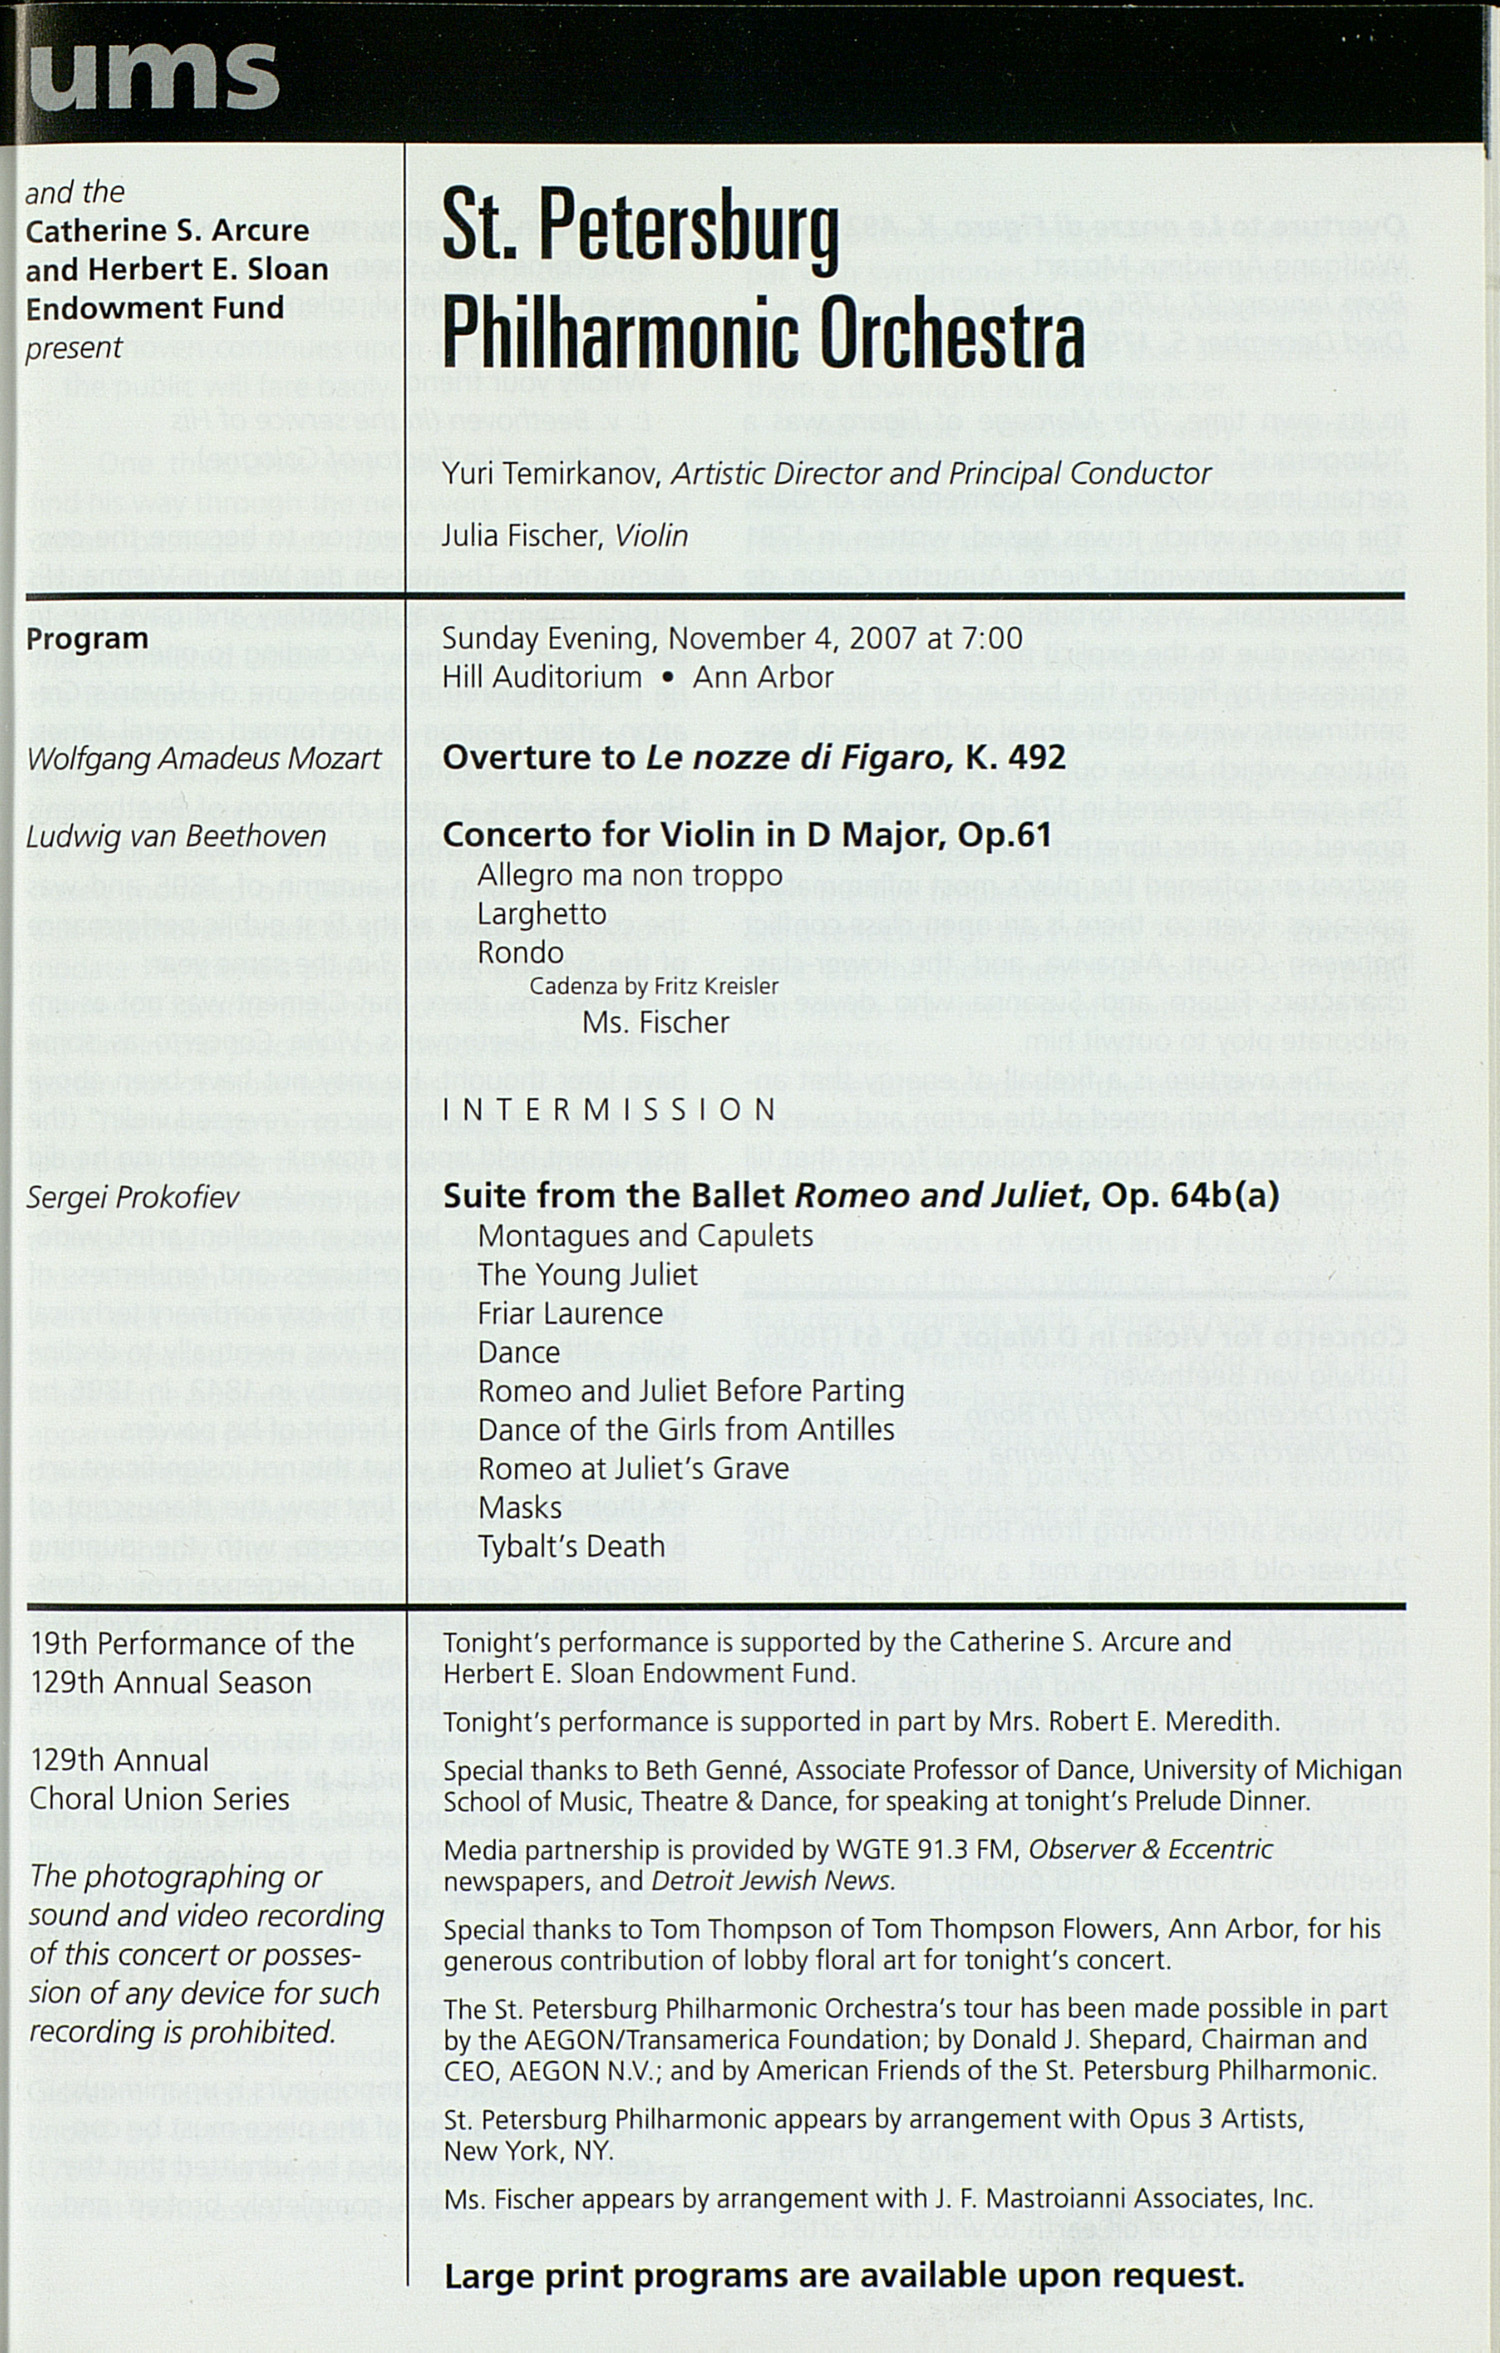 UMS Concert Program, Wednesday Oct. 24 To Nov. 04: University Musical Society: Fall 2007 - Wednesday Oct. 24 To Nov. 04 --  image